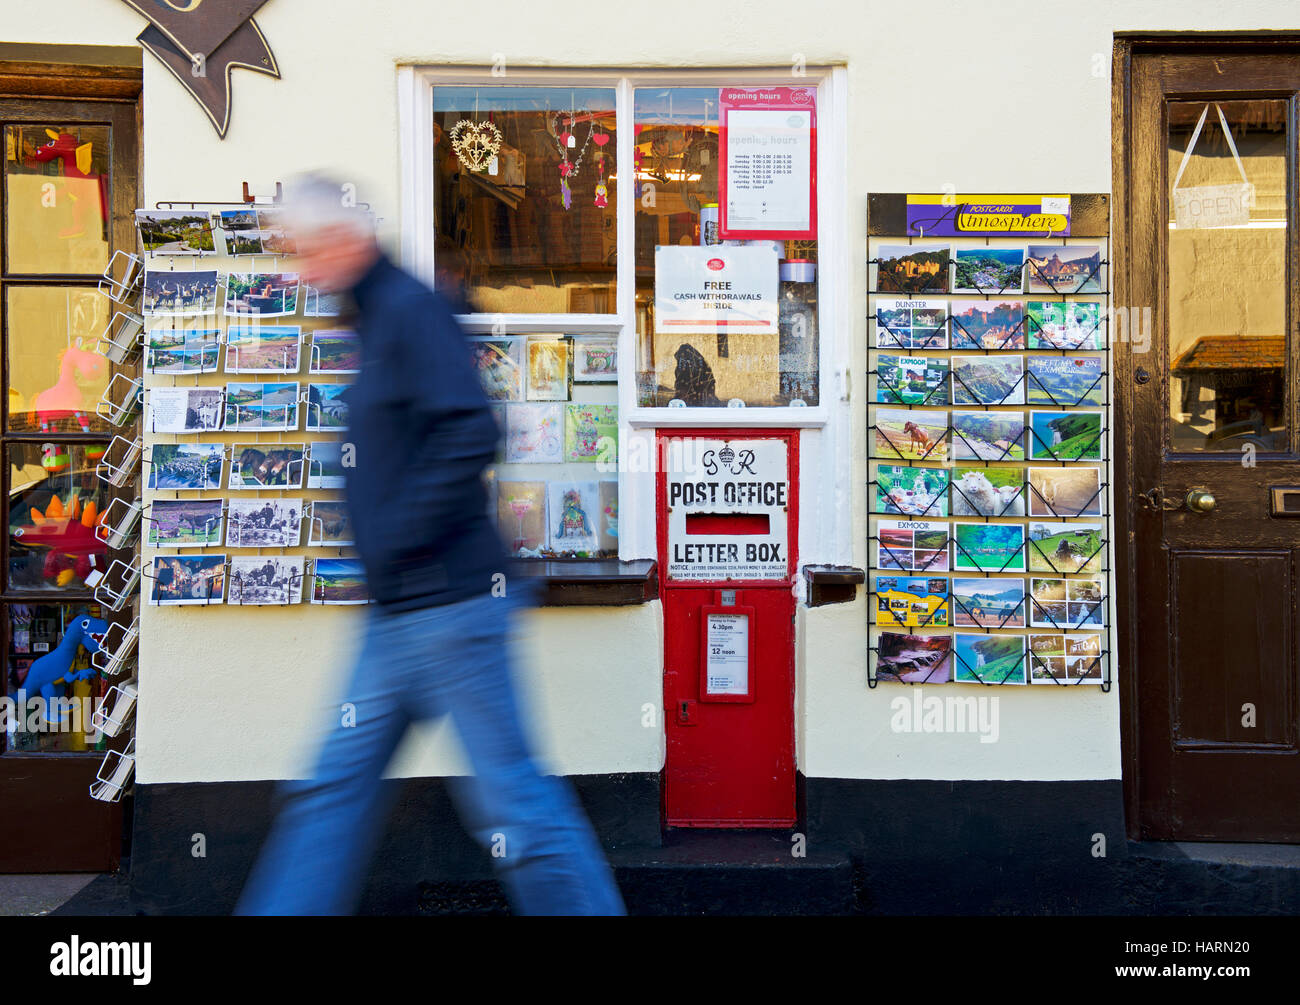 Postcards displayed outside the post office in the village of Dunster, Somerset, England UK - Stock Image